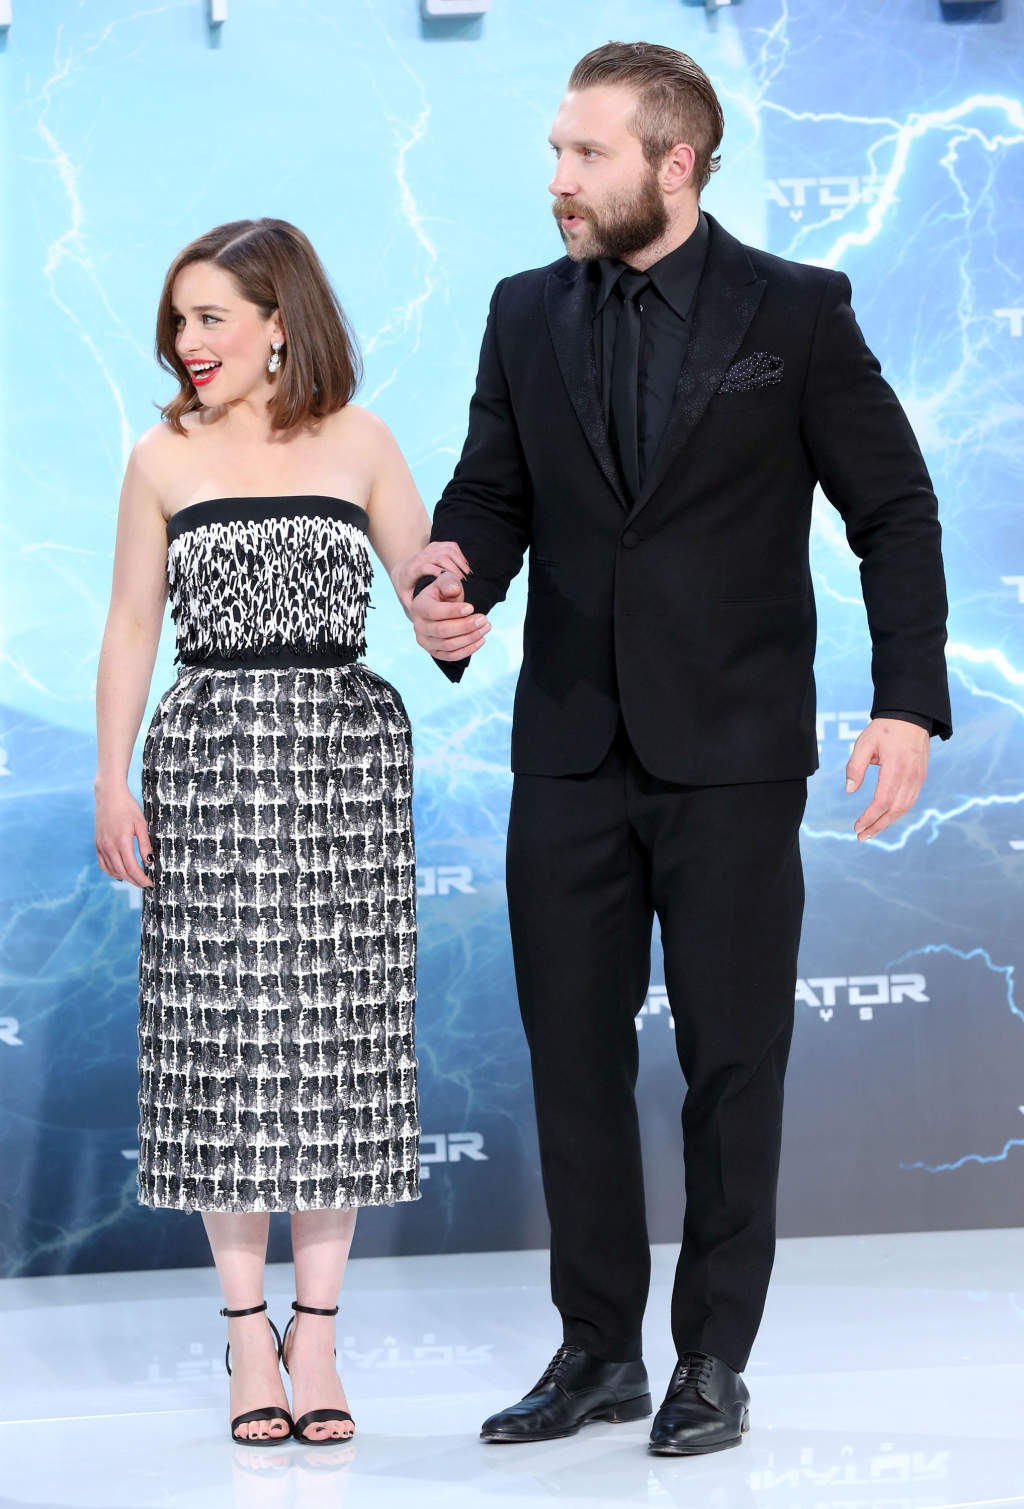 51779152 Celebrities attend the European Premiere of 'Terminator: Genisys' at the CineStar Sony Center on June 21, 2015 in Berlin, Germany. Celebrities attend the European Premiere of 'Terminator: Genisys' at the CineStar Sony Center on June 21, 2015 in Berlin, Germany. Pictured: Emilia Clarke, Jai Courtney FameFlynet, Inc - Beverly Hills, CA, USA - +1 (818) 307-4813 RESTRICTIONS APPLY: USA ONLY